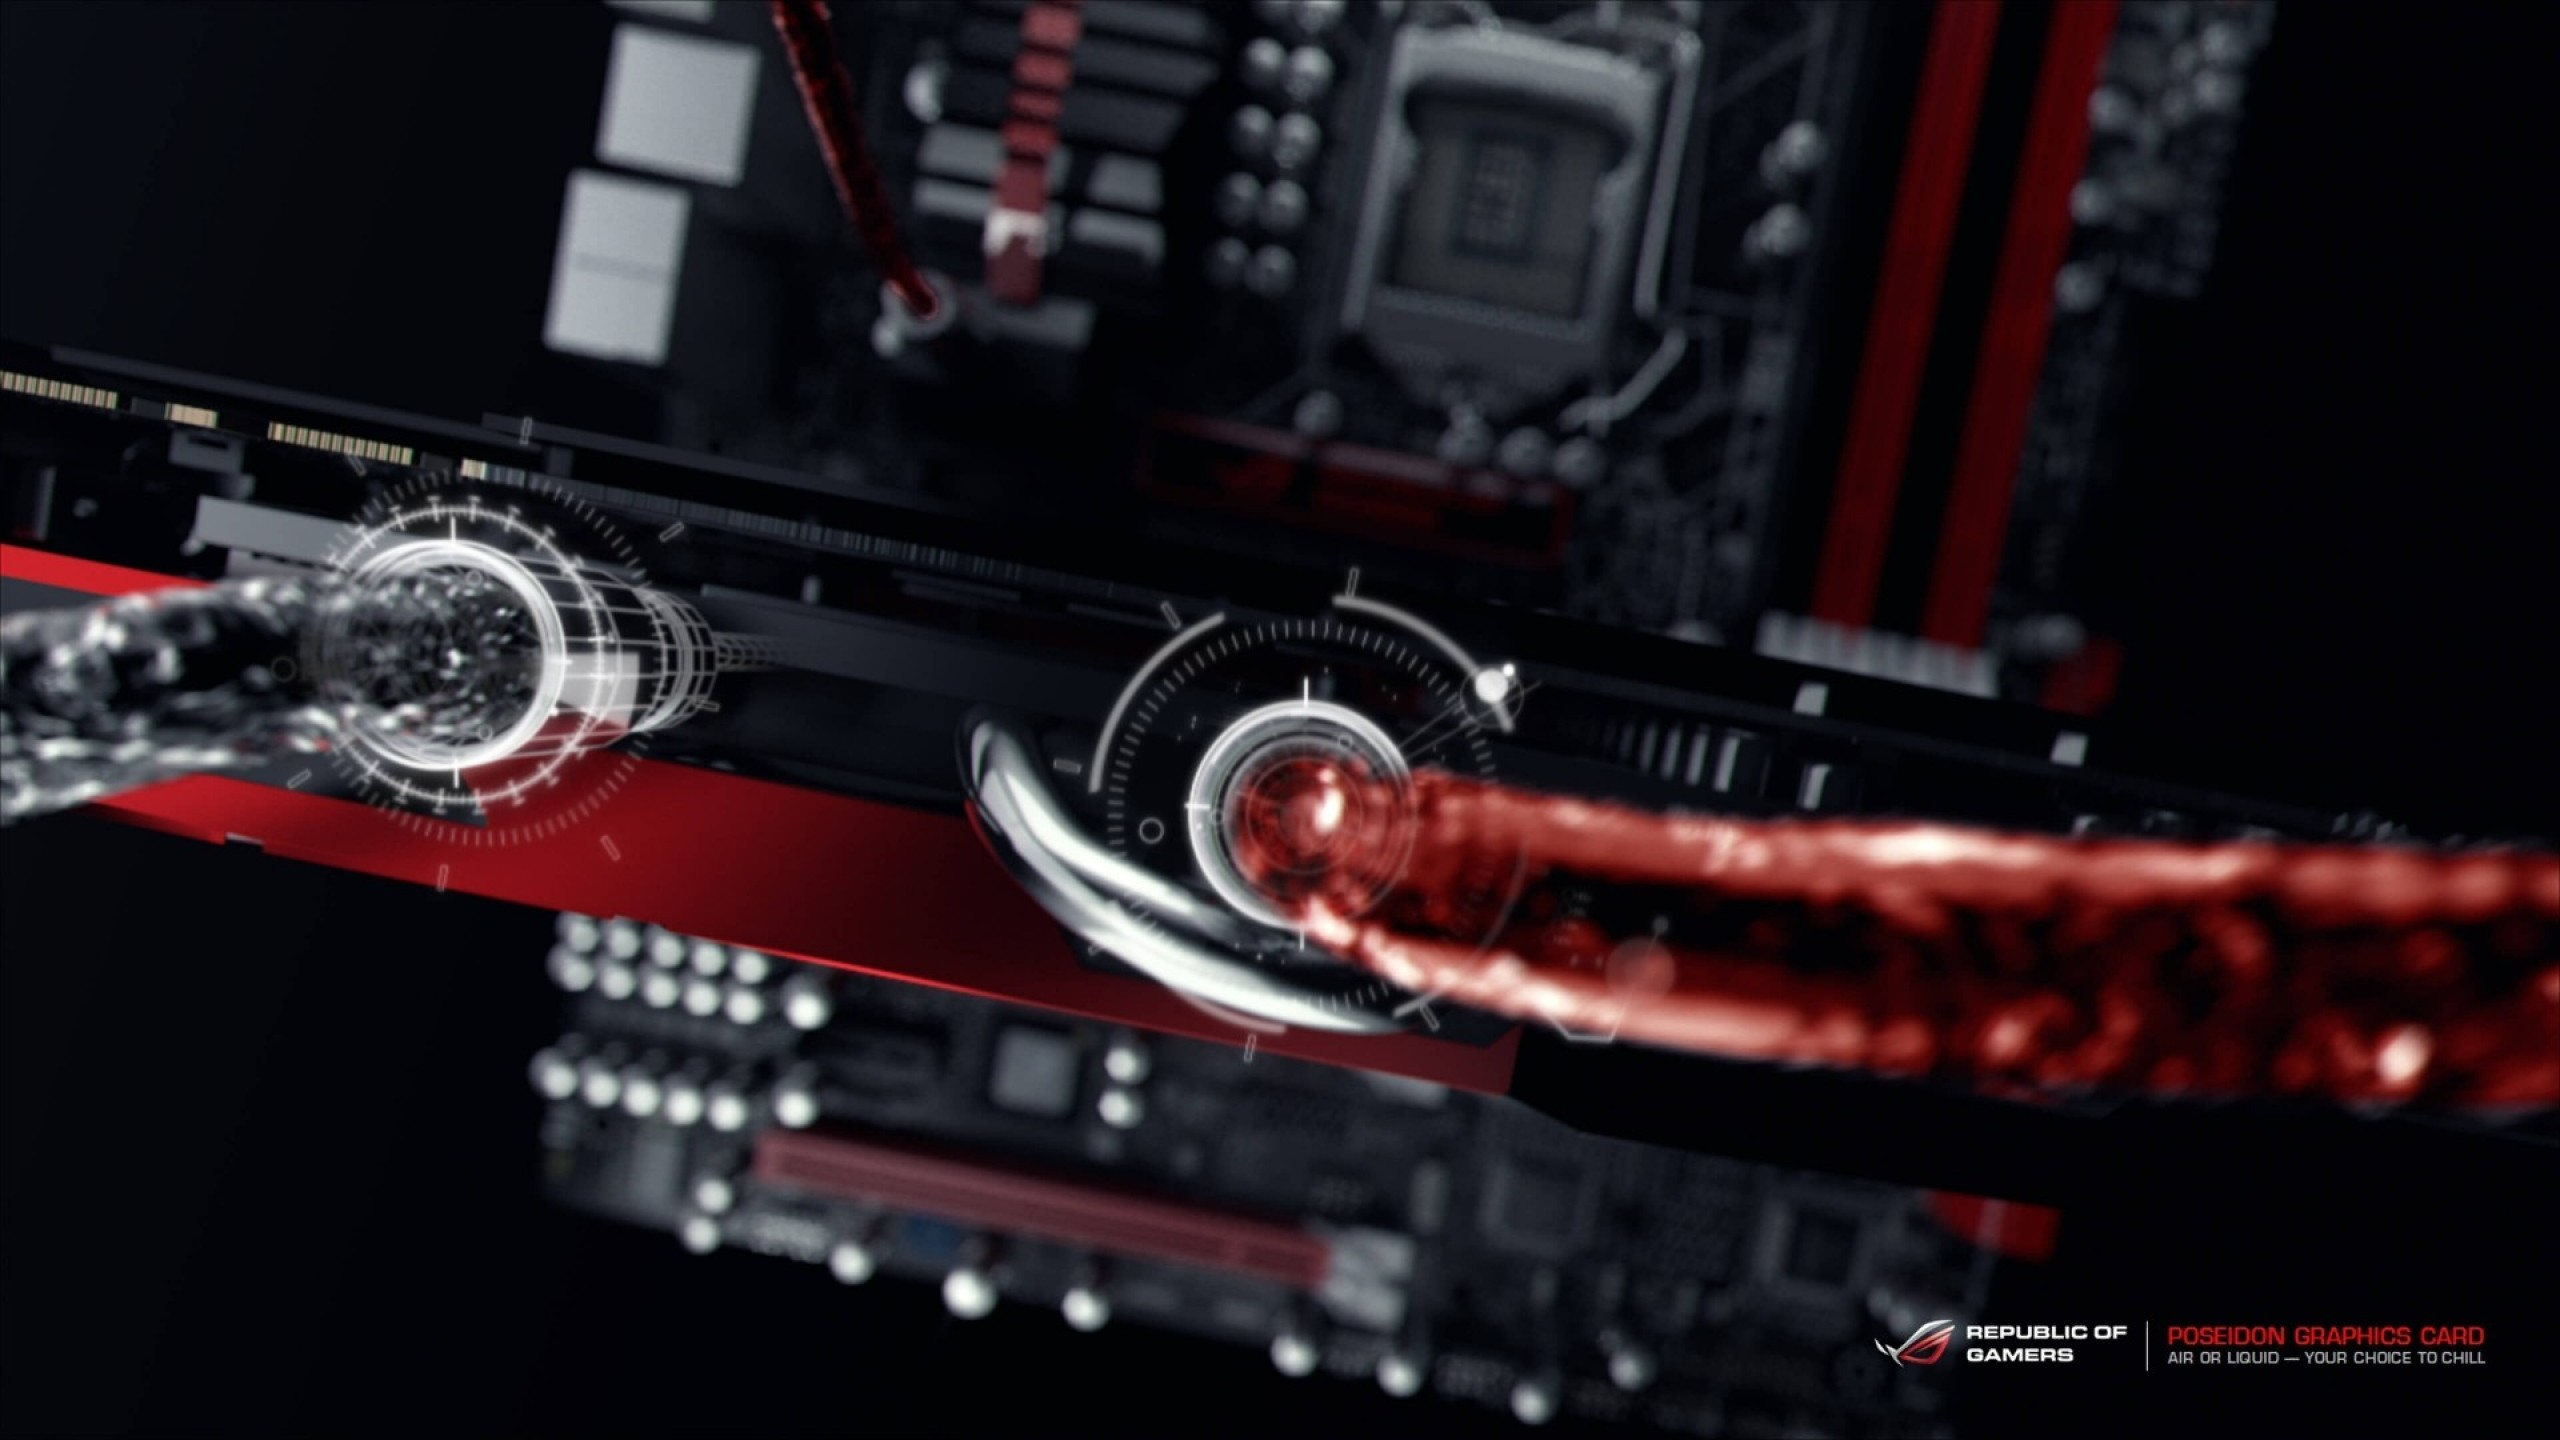 2560x1440  Wallpaper asus, asus rog, pc gaming